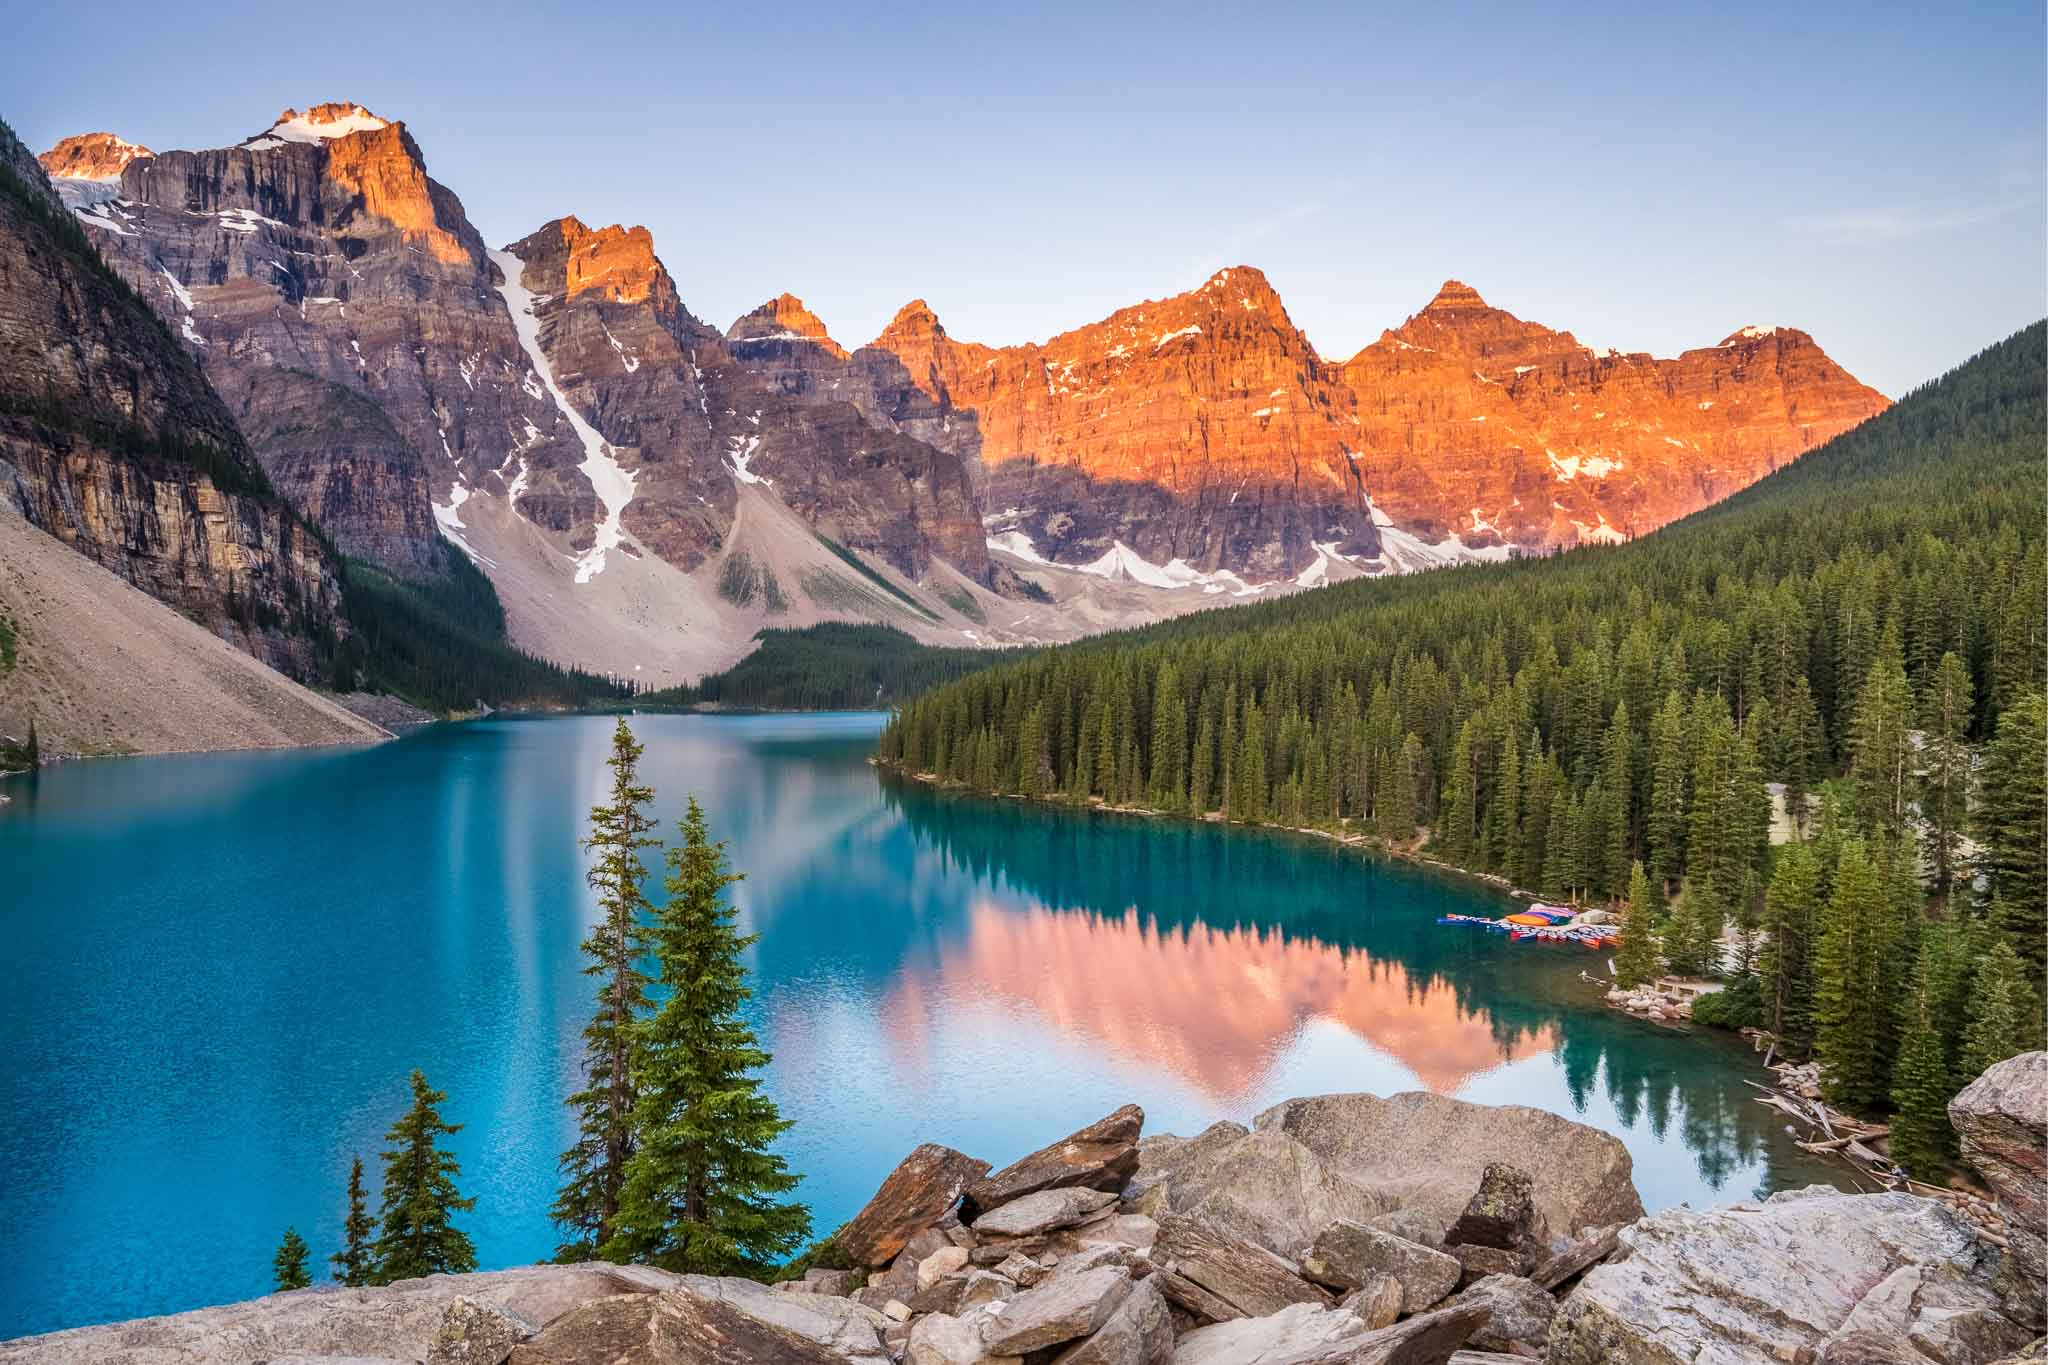 Sunrise over Moraine Lake, Banff National Park, Alberta, Canada